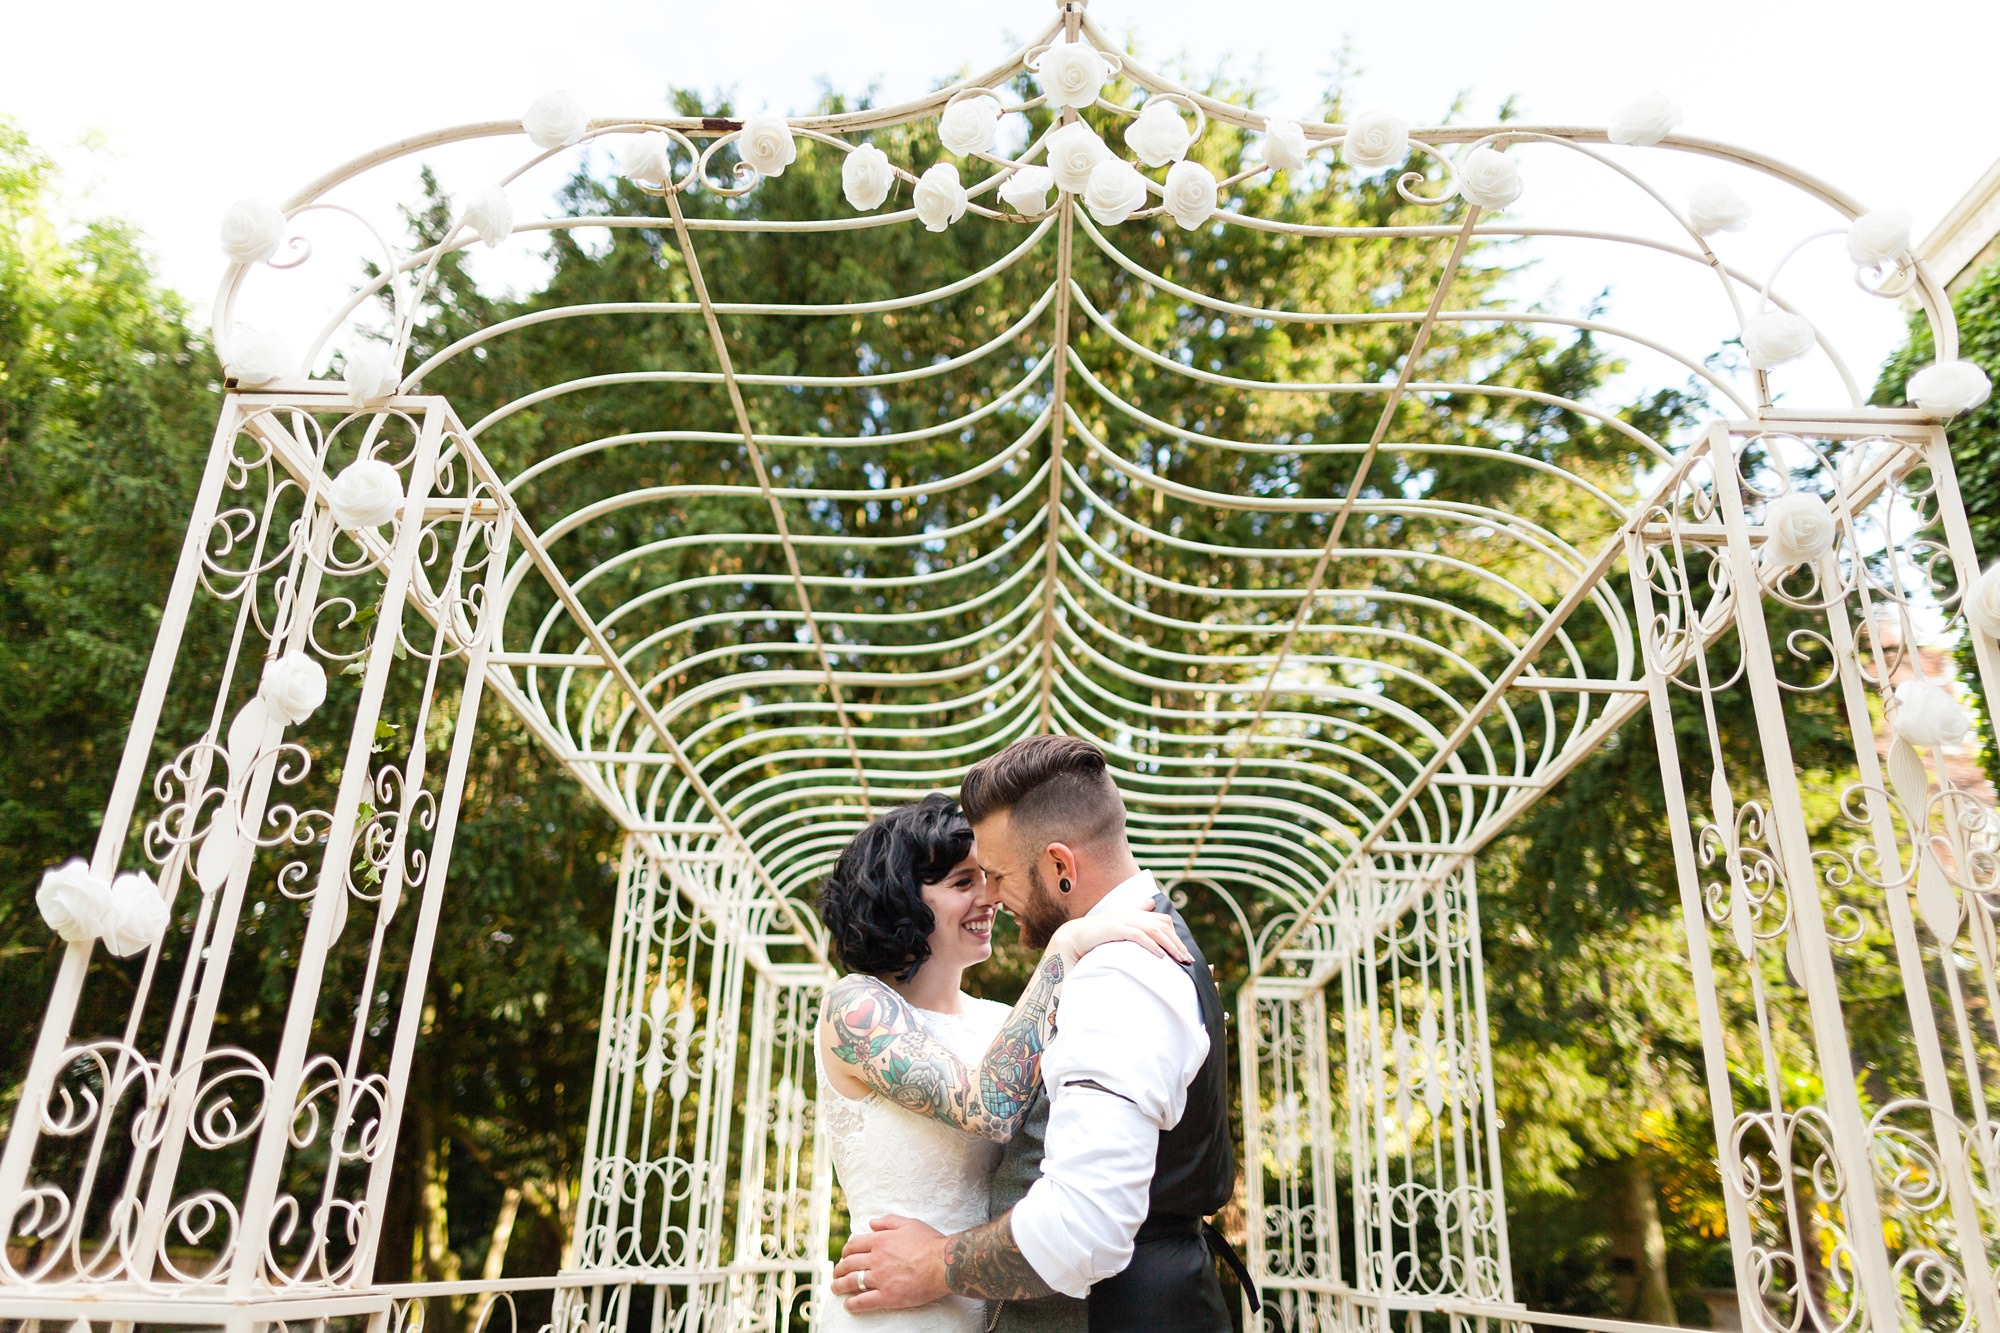 Yorkshire Wedding Photography at Crab and Lobster tattooed couple under arch